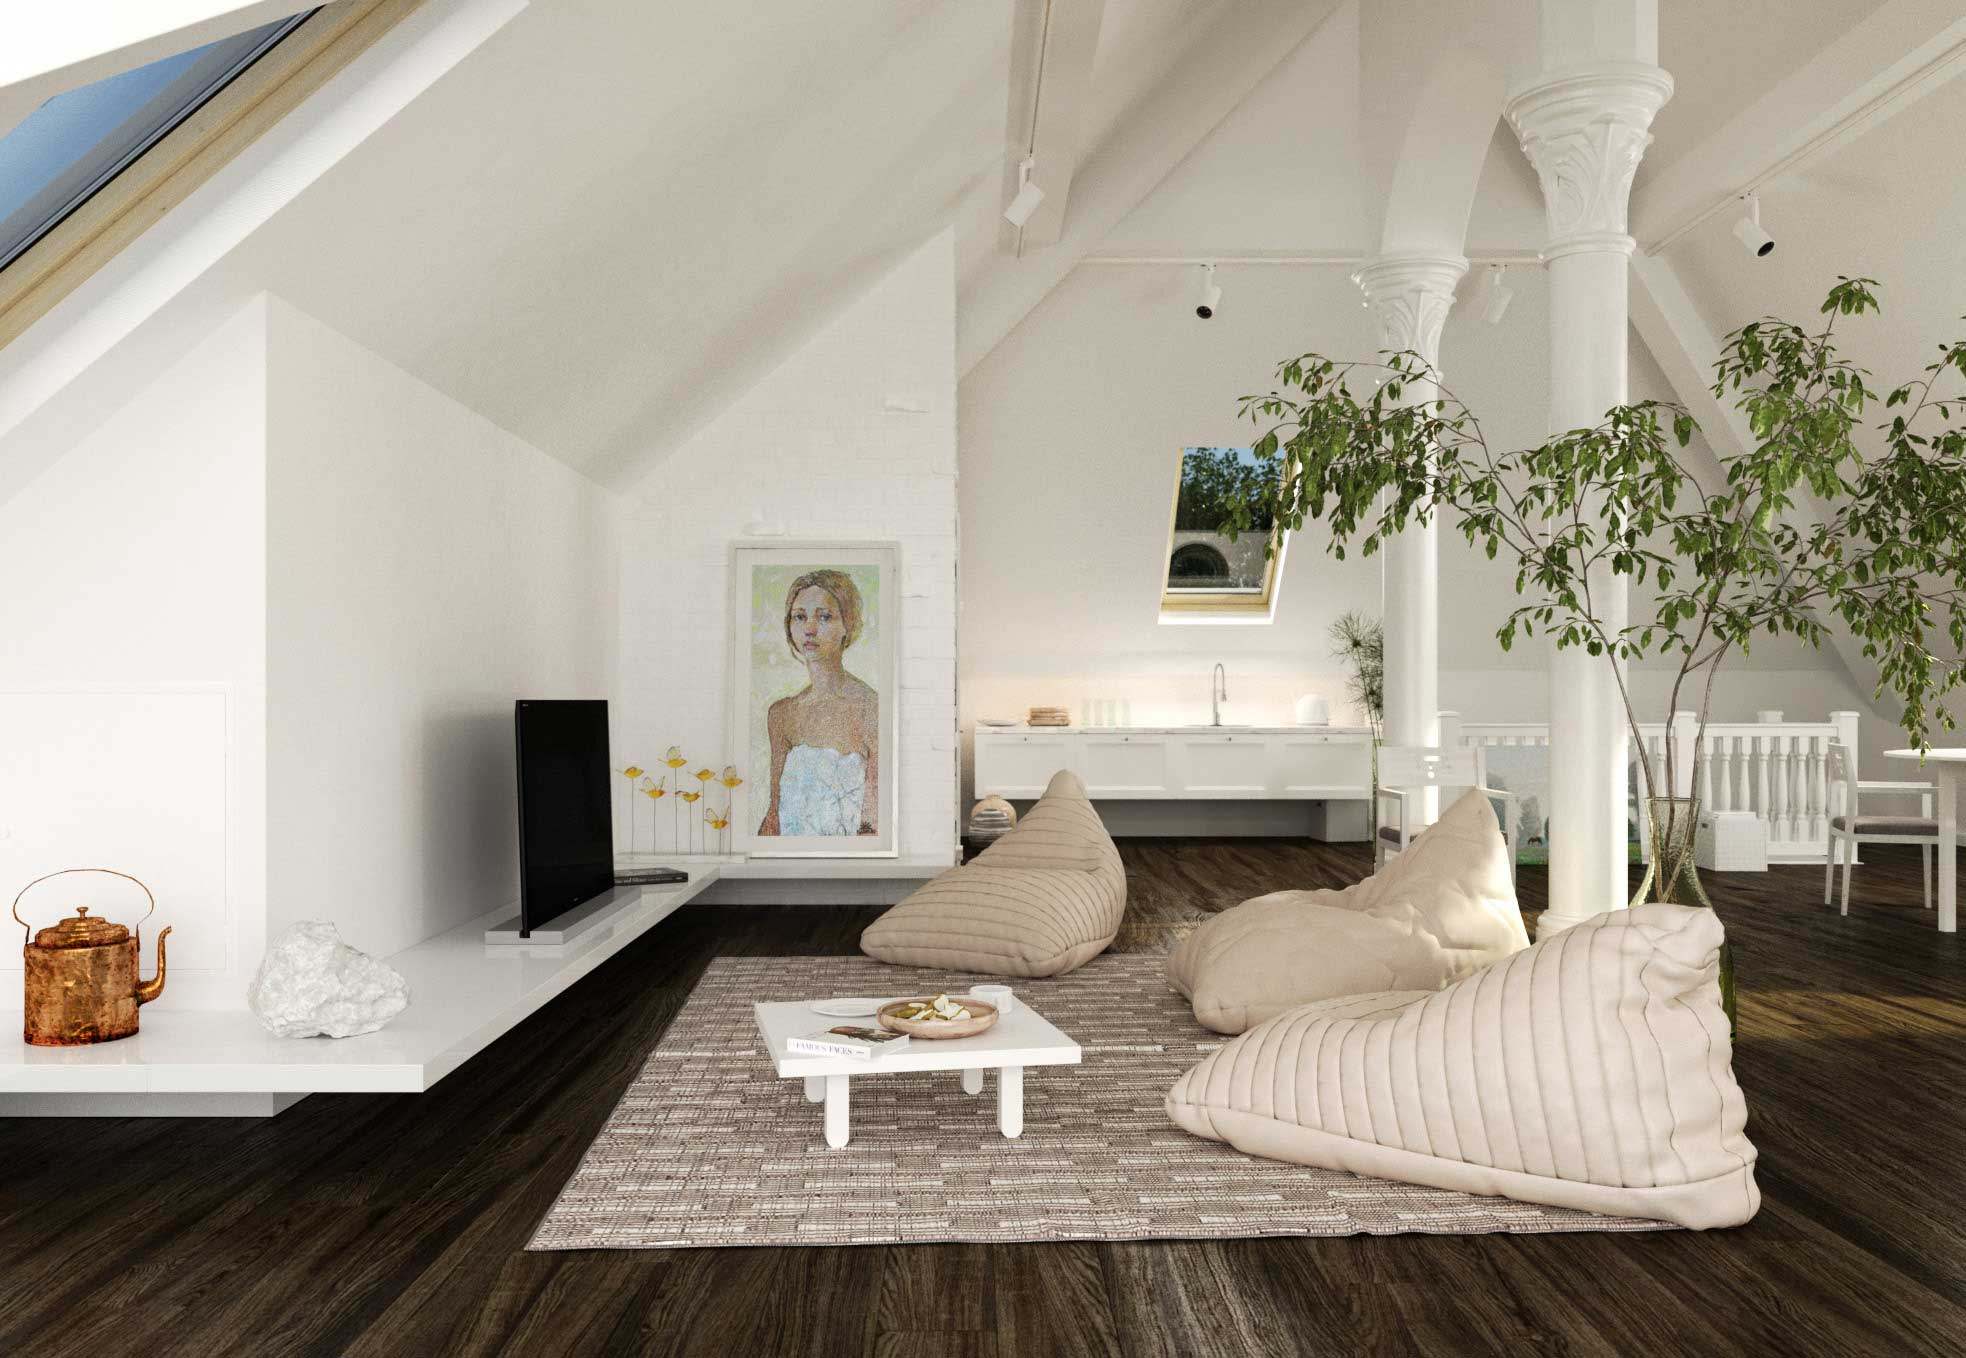 Attic Living Room Design With Bean Bags